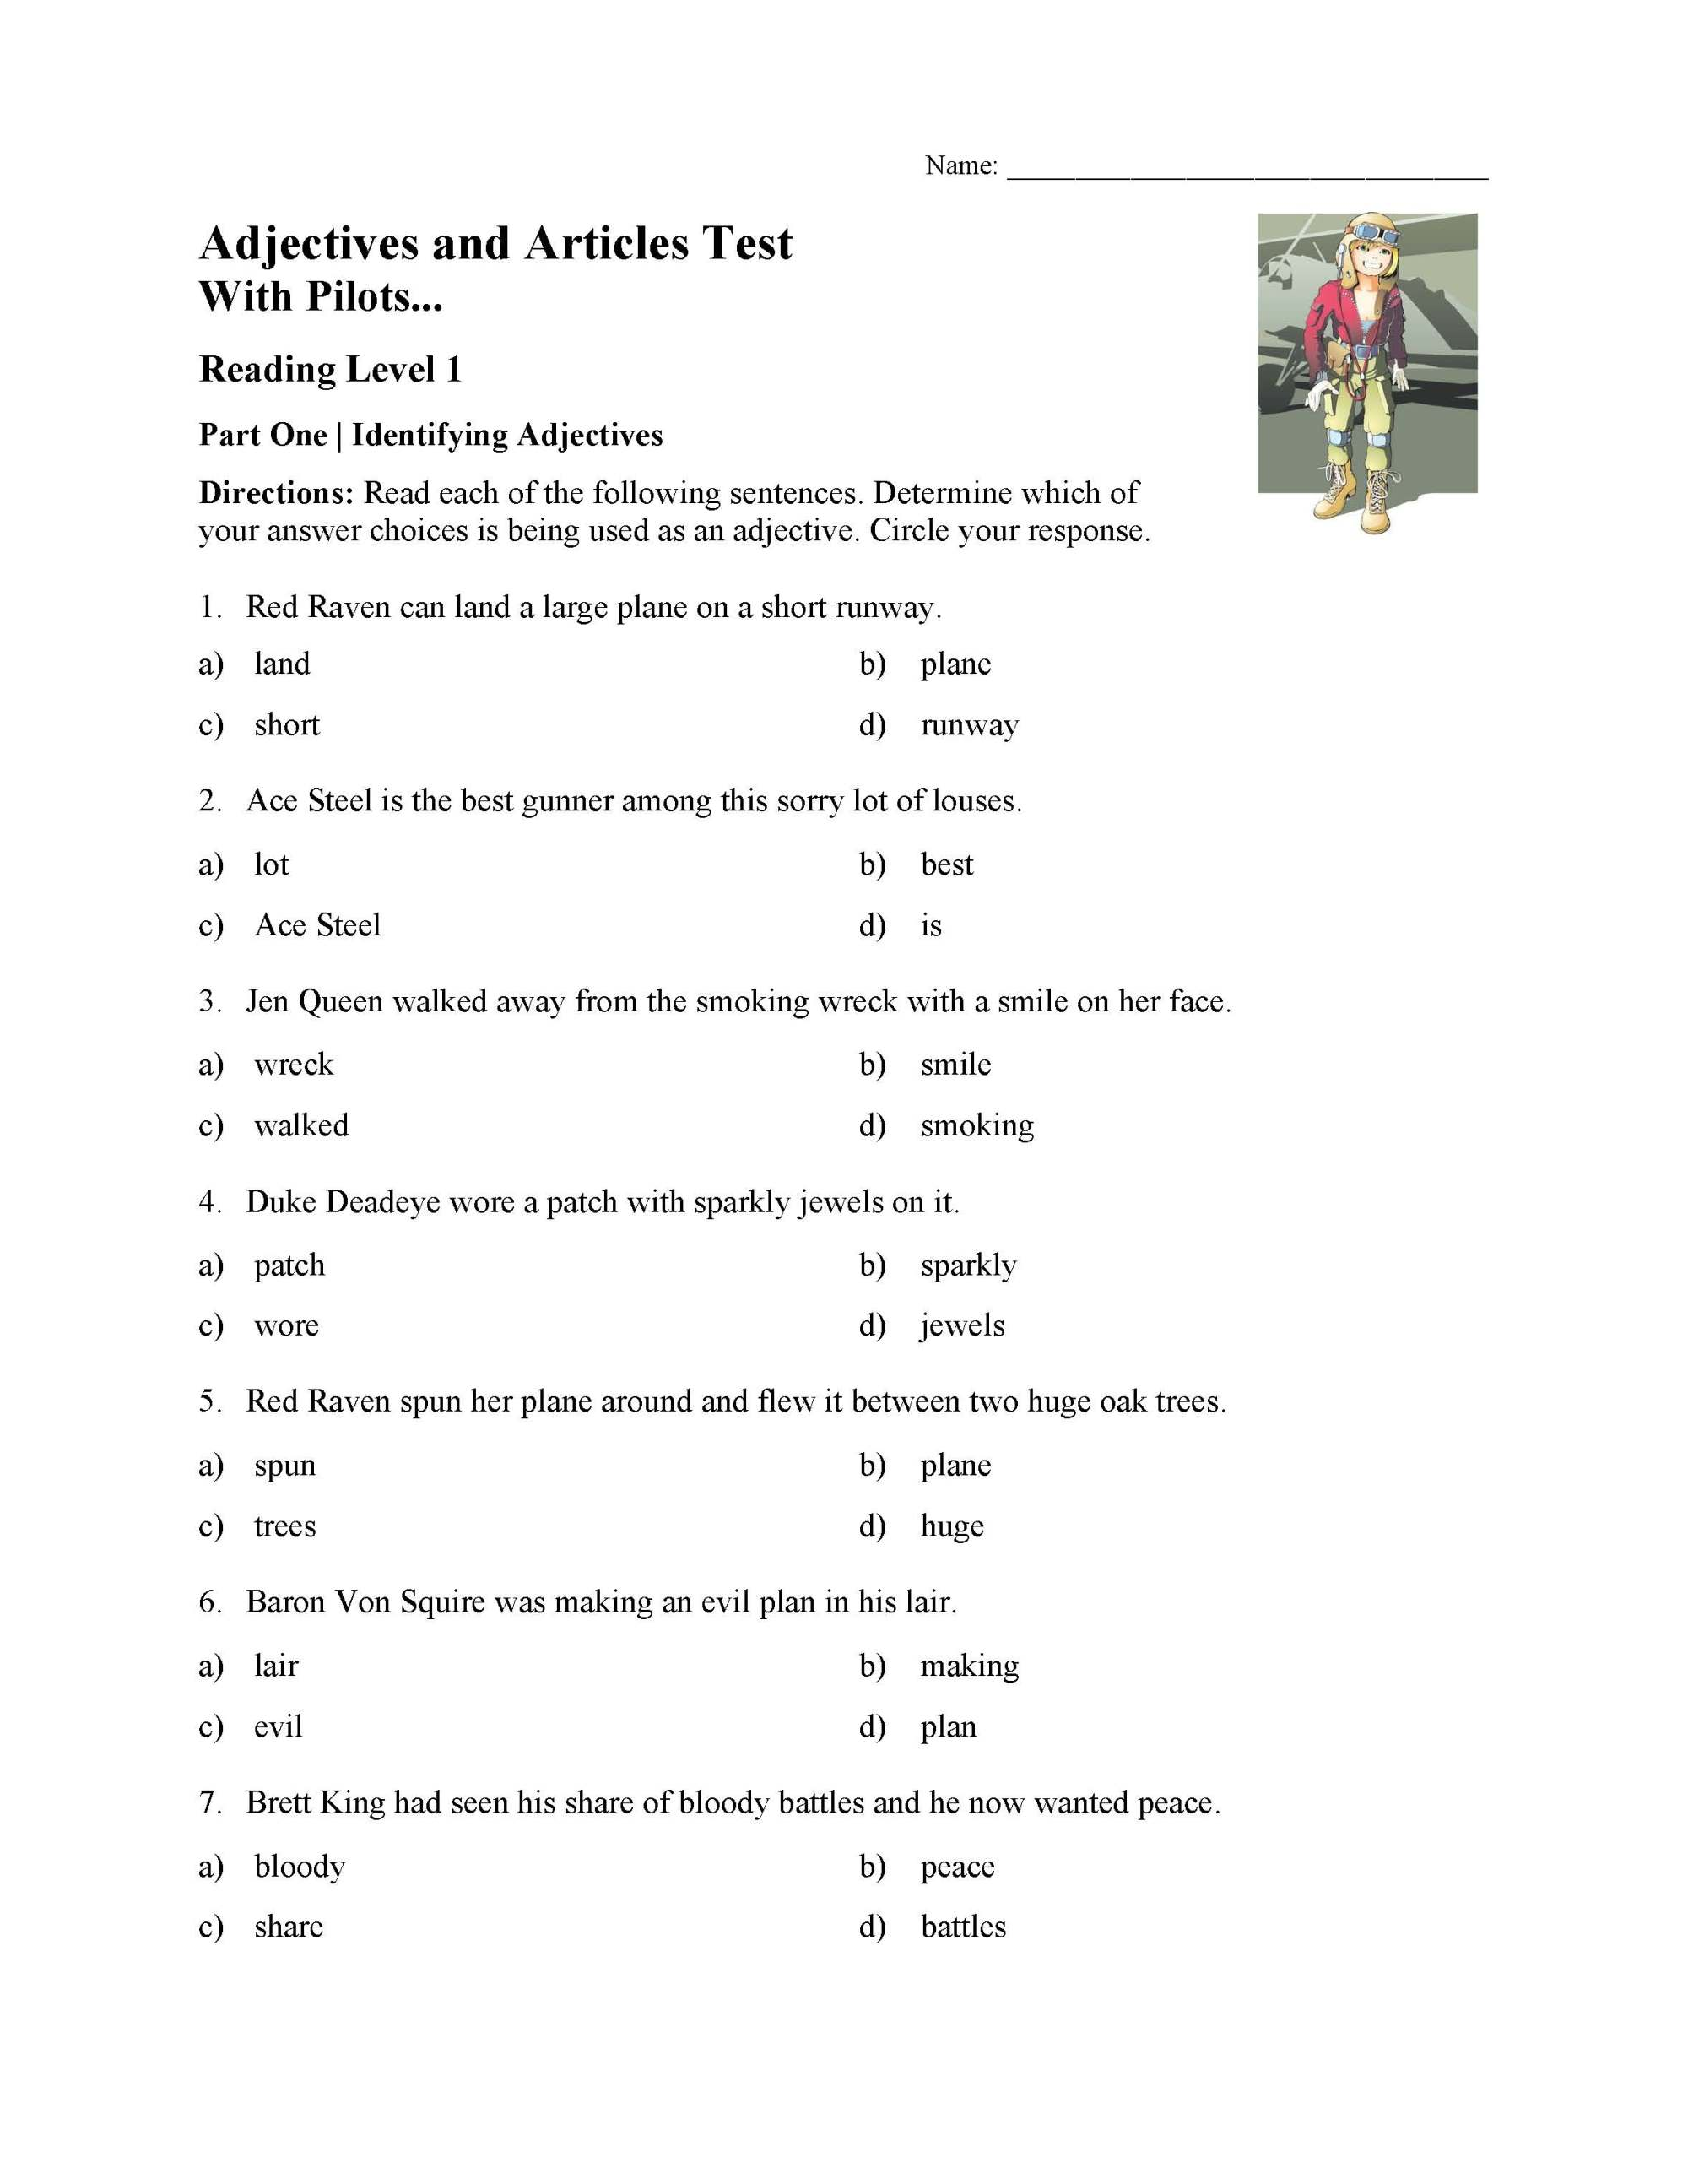 hight resolution of Adjectives and Articles Test With Pilots - Reading Level 1   Preview